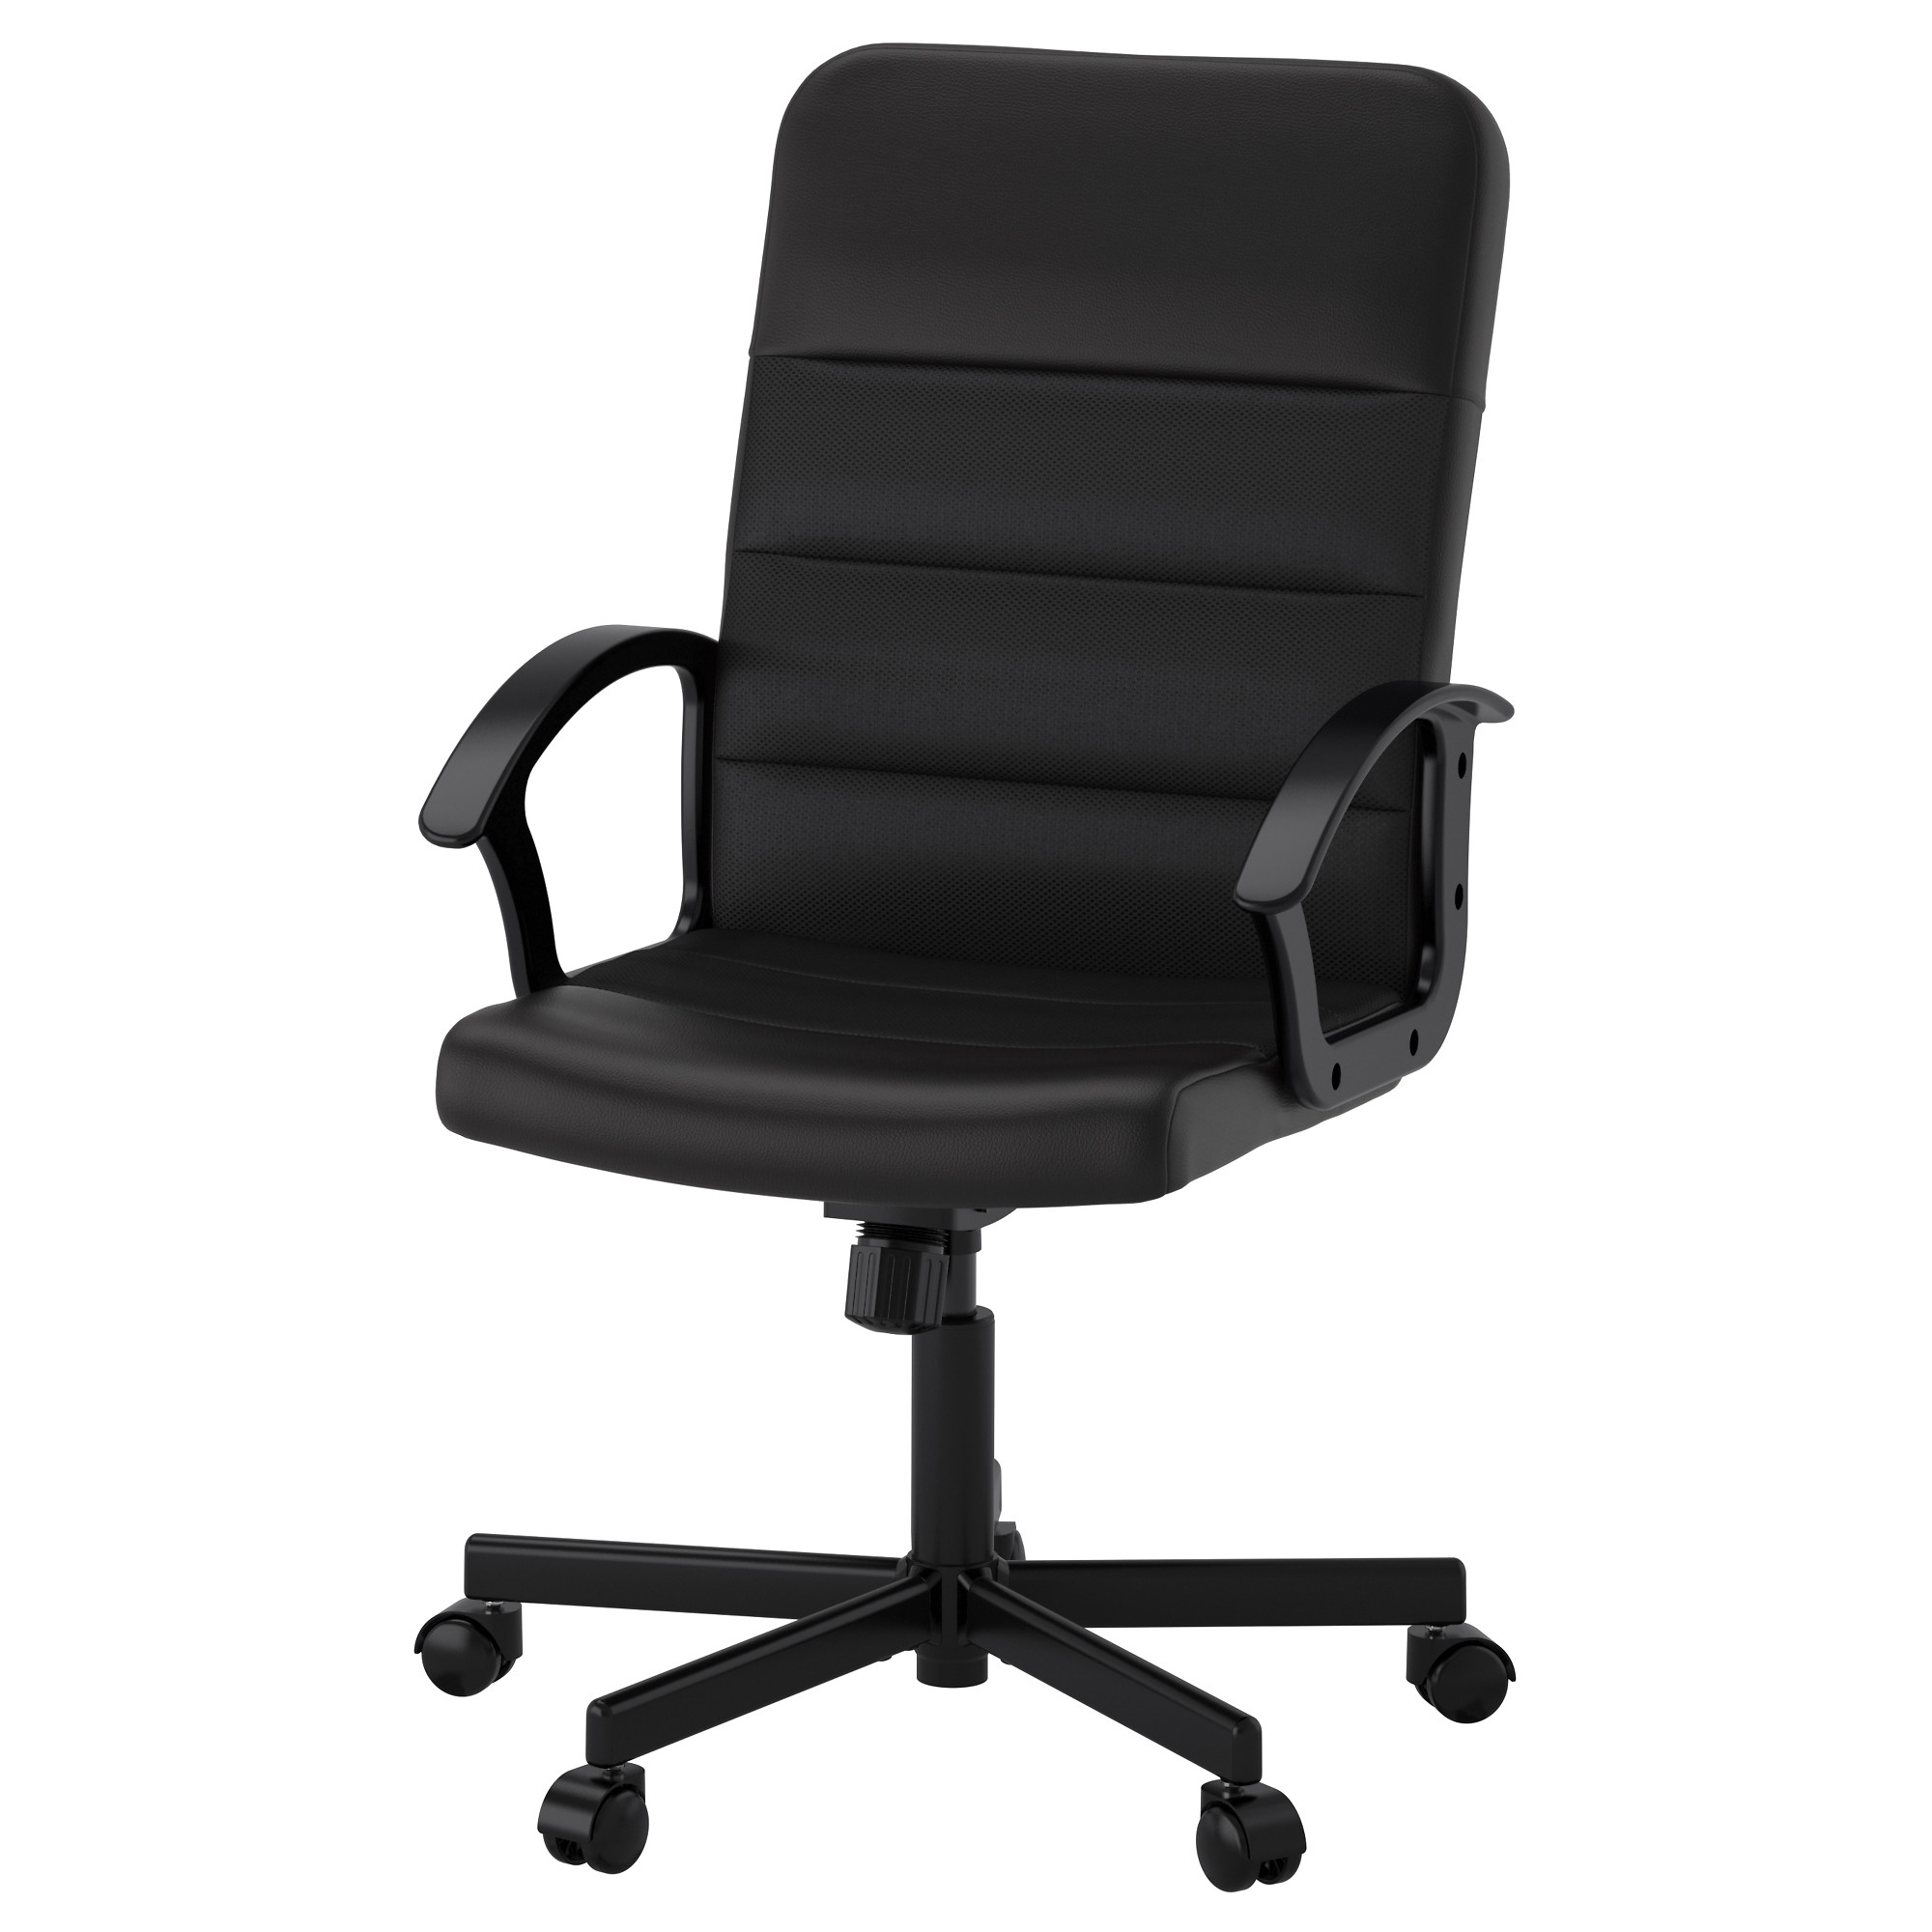 ikea office chairs canada. 20171022t05000700 ikea office chairs canada